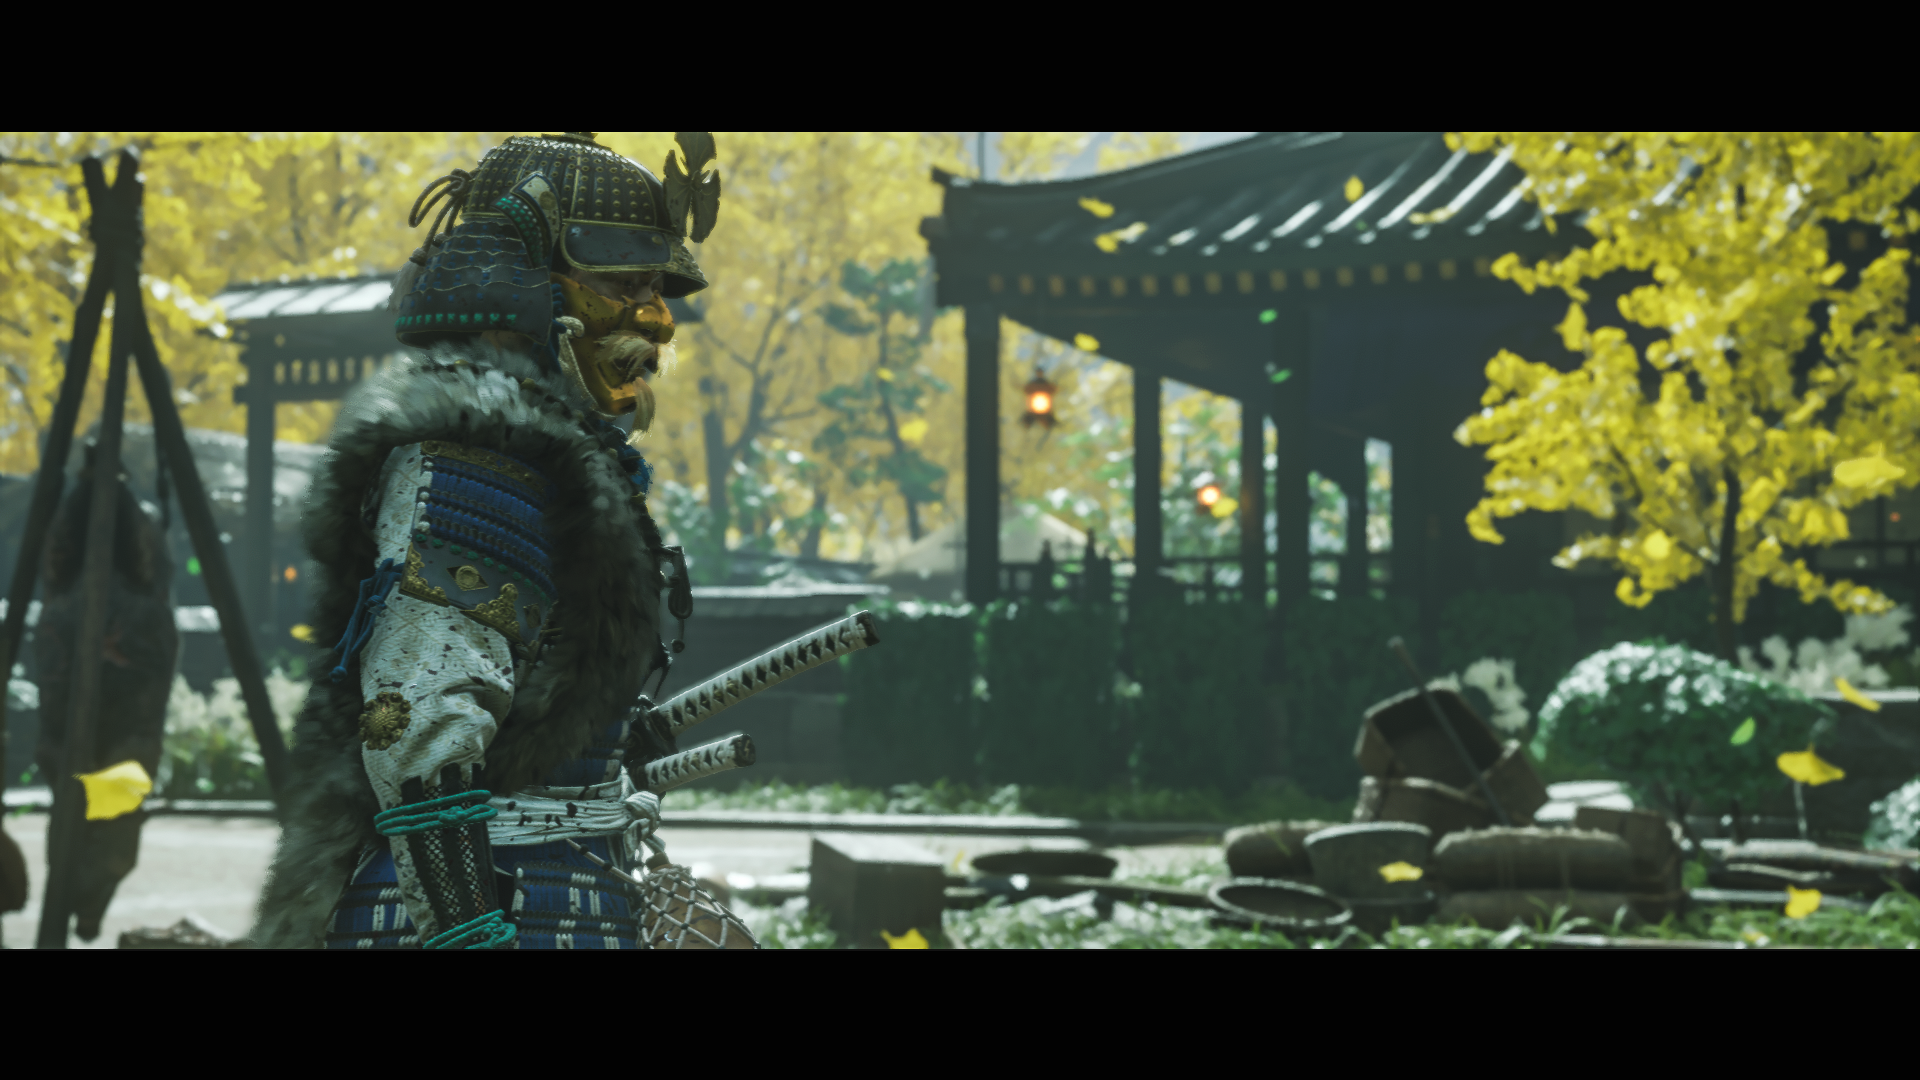 Ghost_of_Tsushima_20200719233250.png